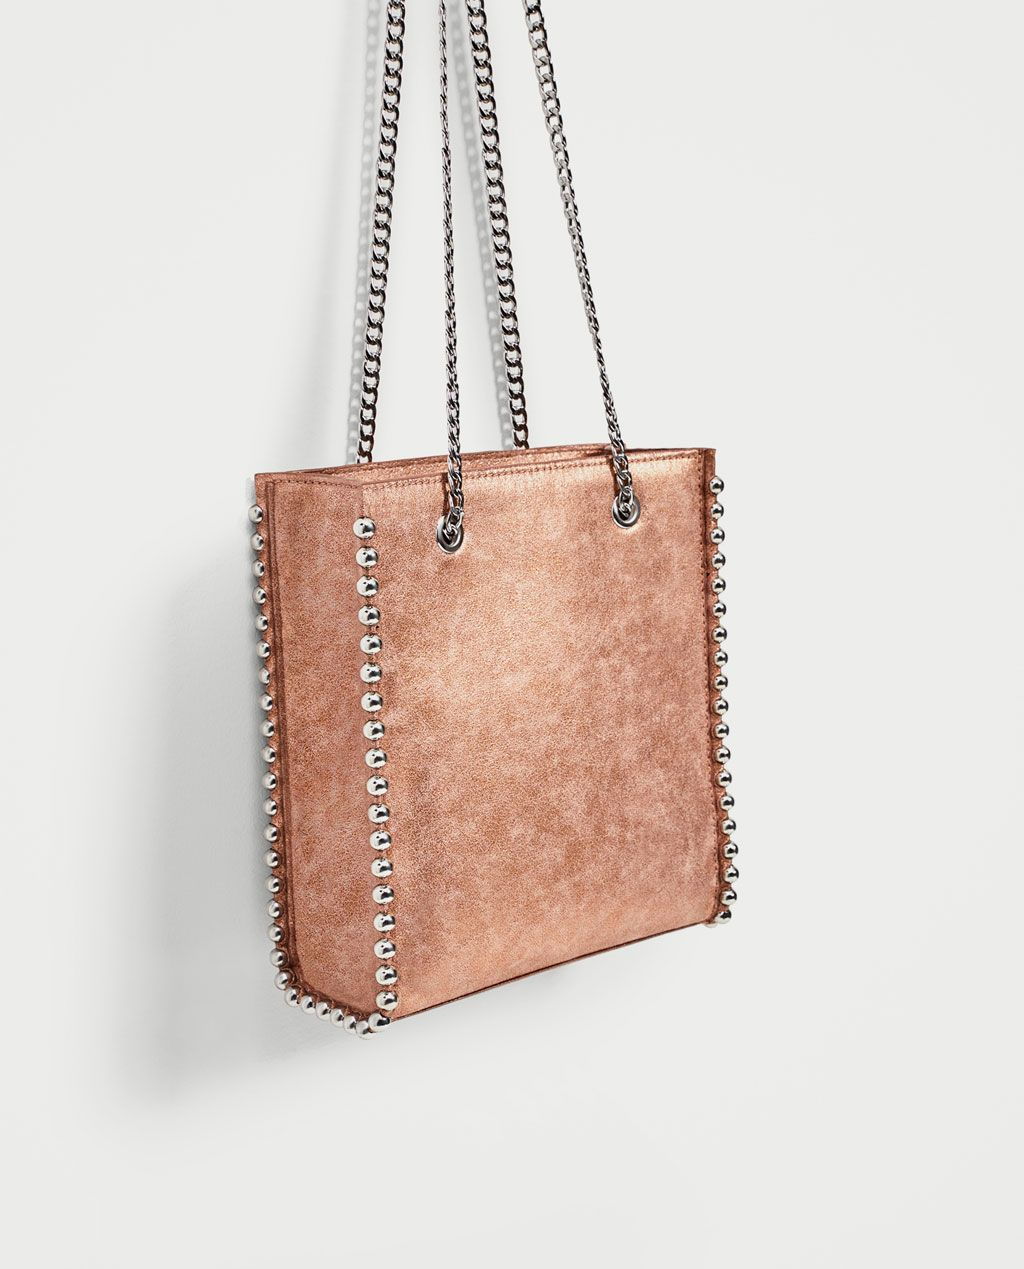 517ebe0d1e16 Image 1 of MINI STUDDED TOTE from Zara